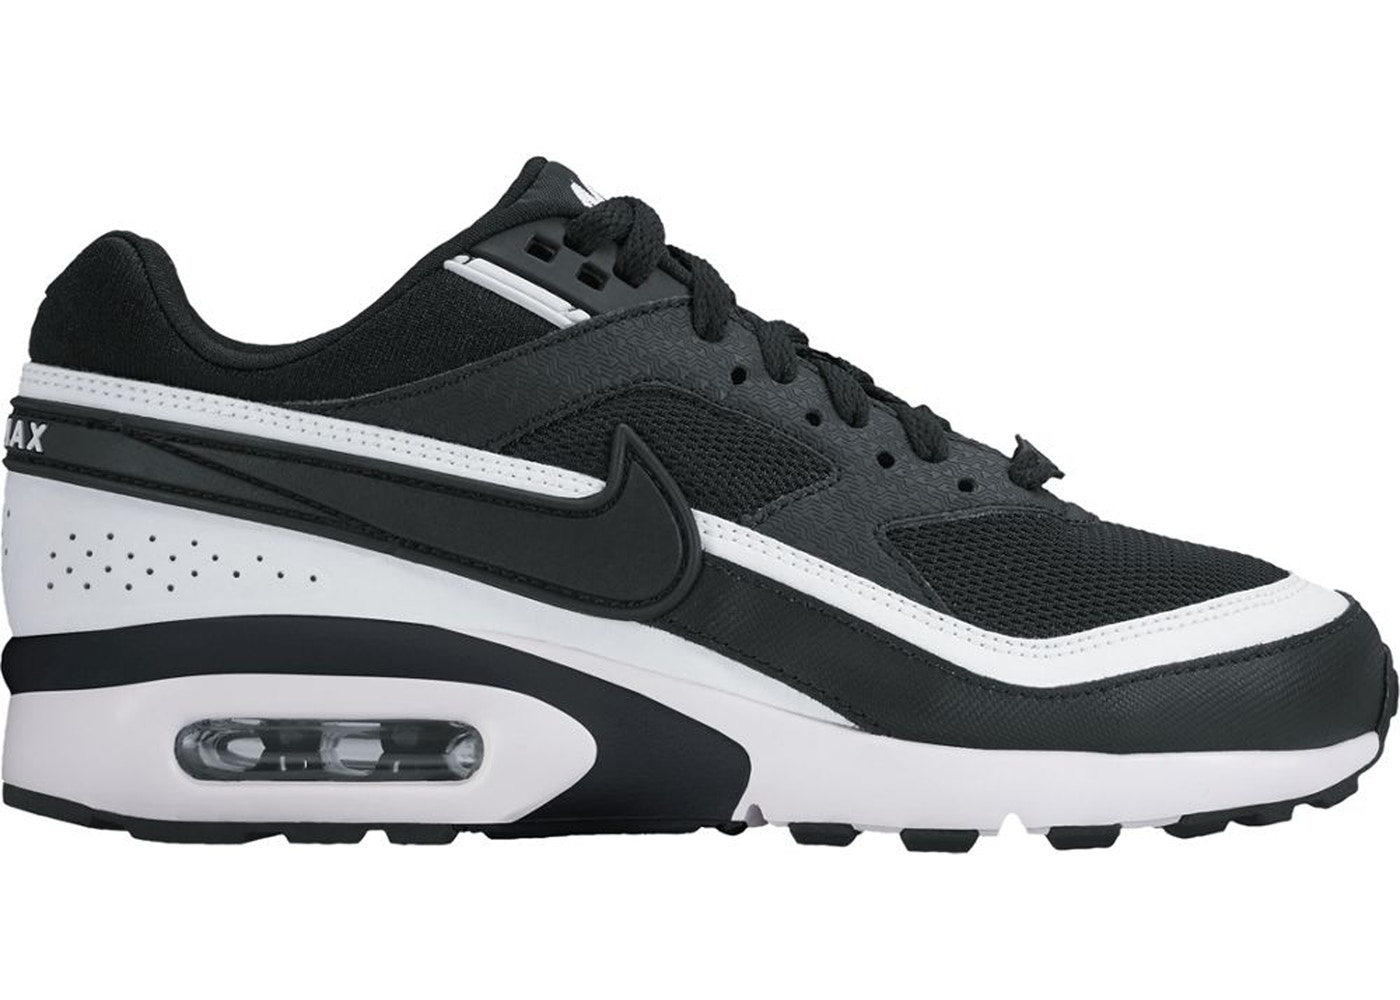 7a237af559 Sell. or Ask. Size: 5Y. View All Bids. Air Max BW Black White (GS)